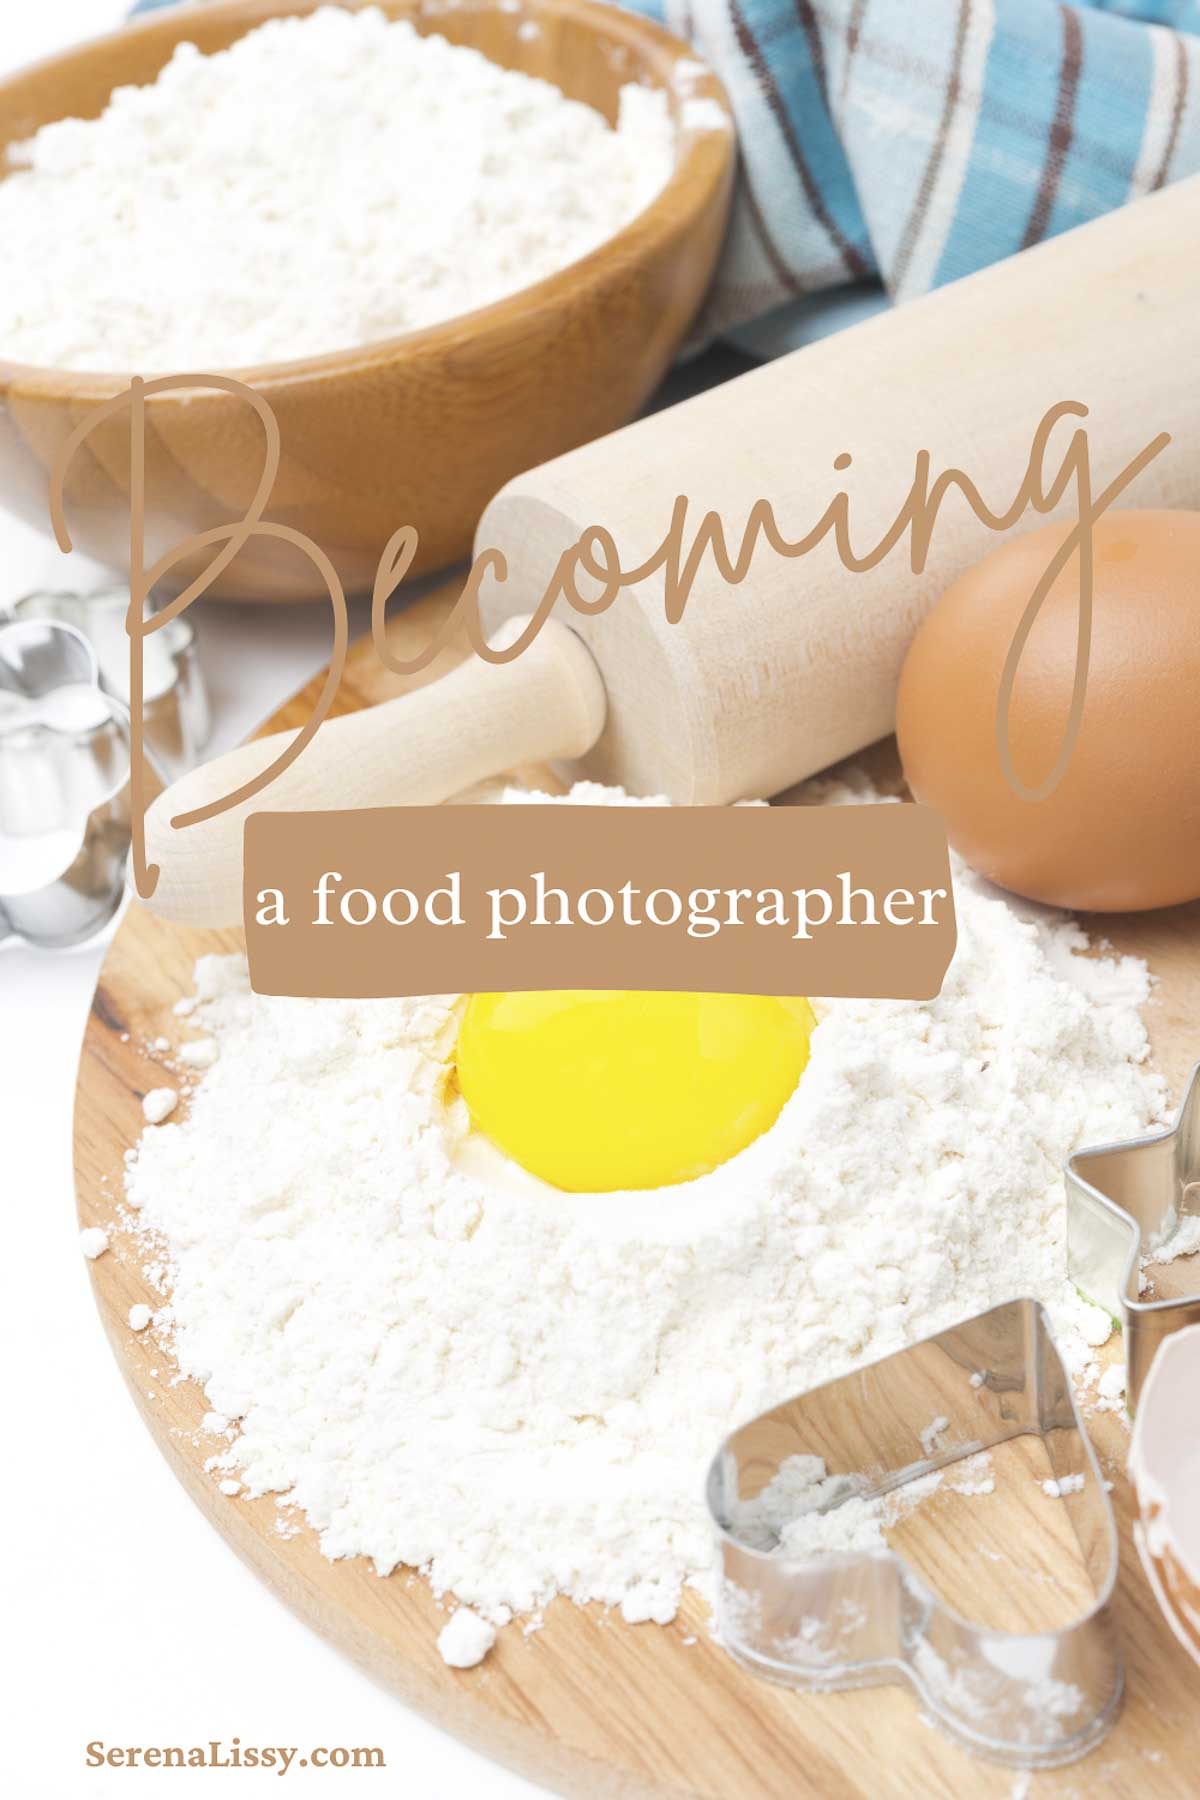 Eggs, flour and rolling pin on table